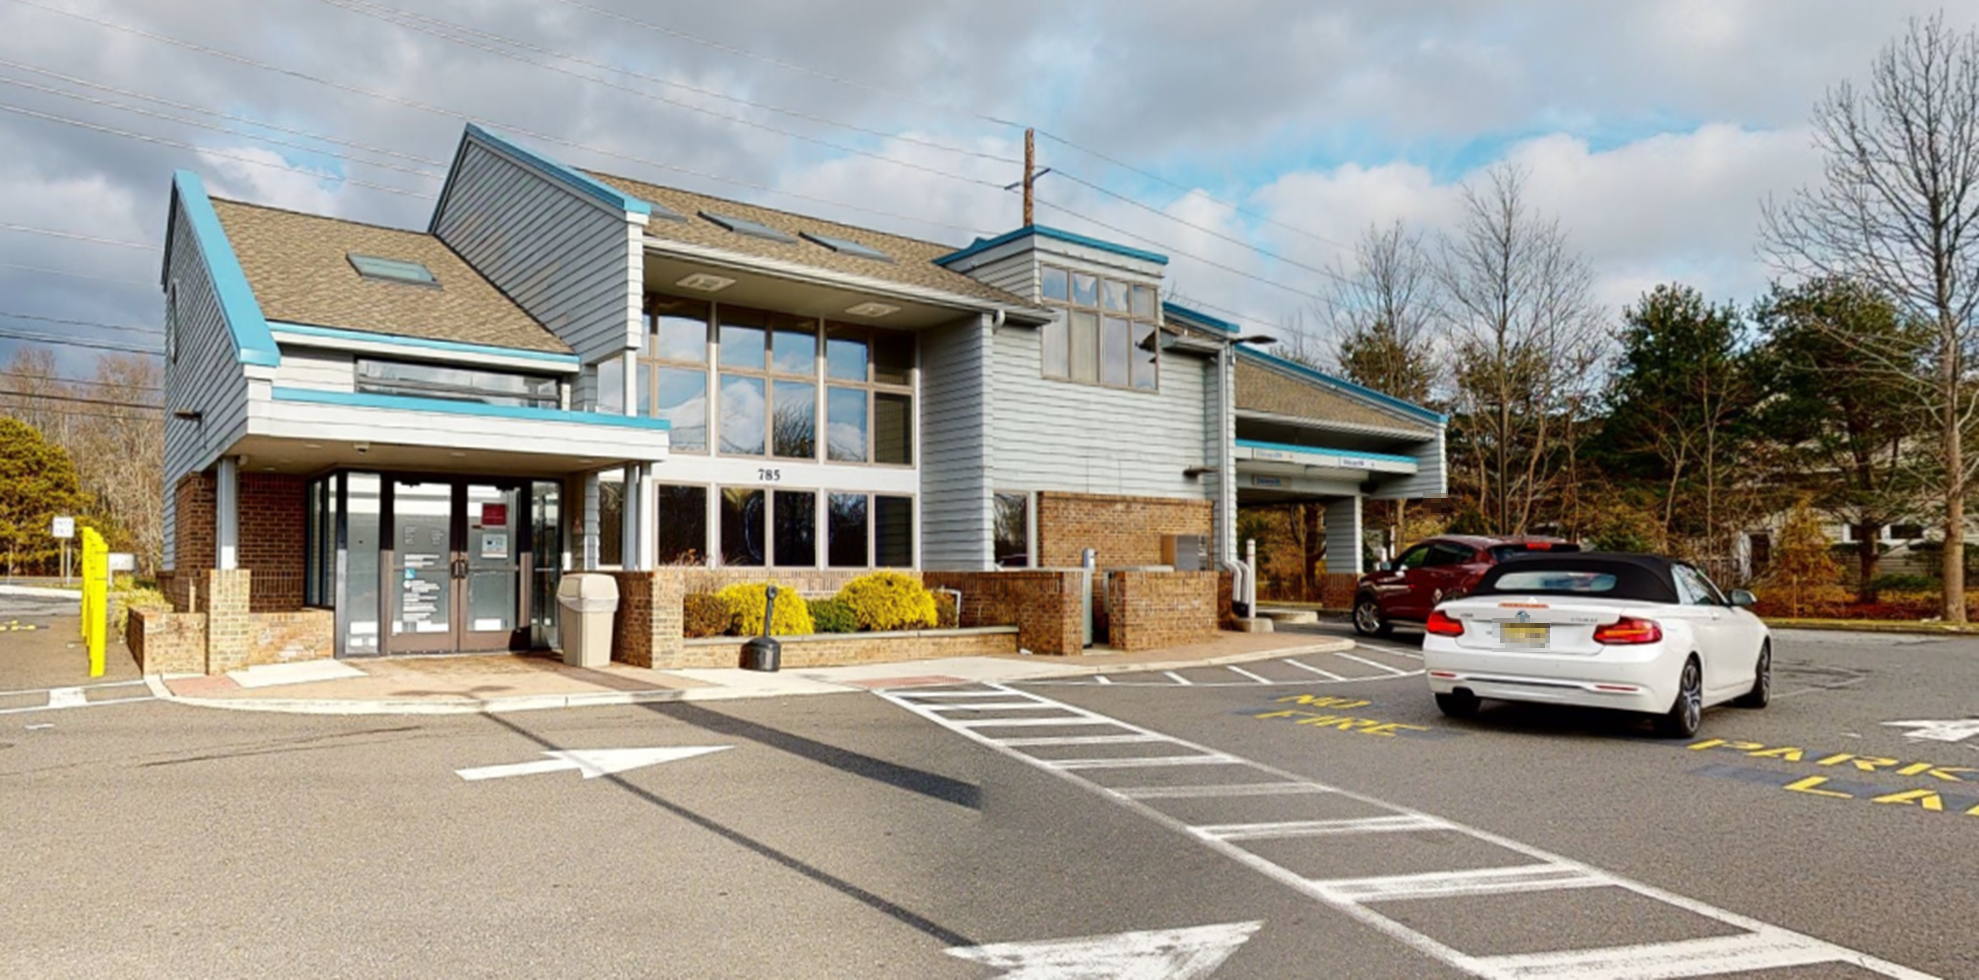 Bank of America financial center with drive-thru ATM | 785 Route 72 E, Manahawkin, NJ 08050